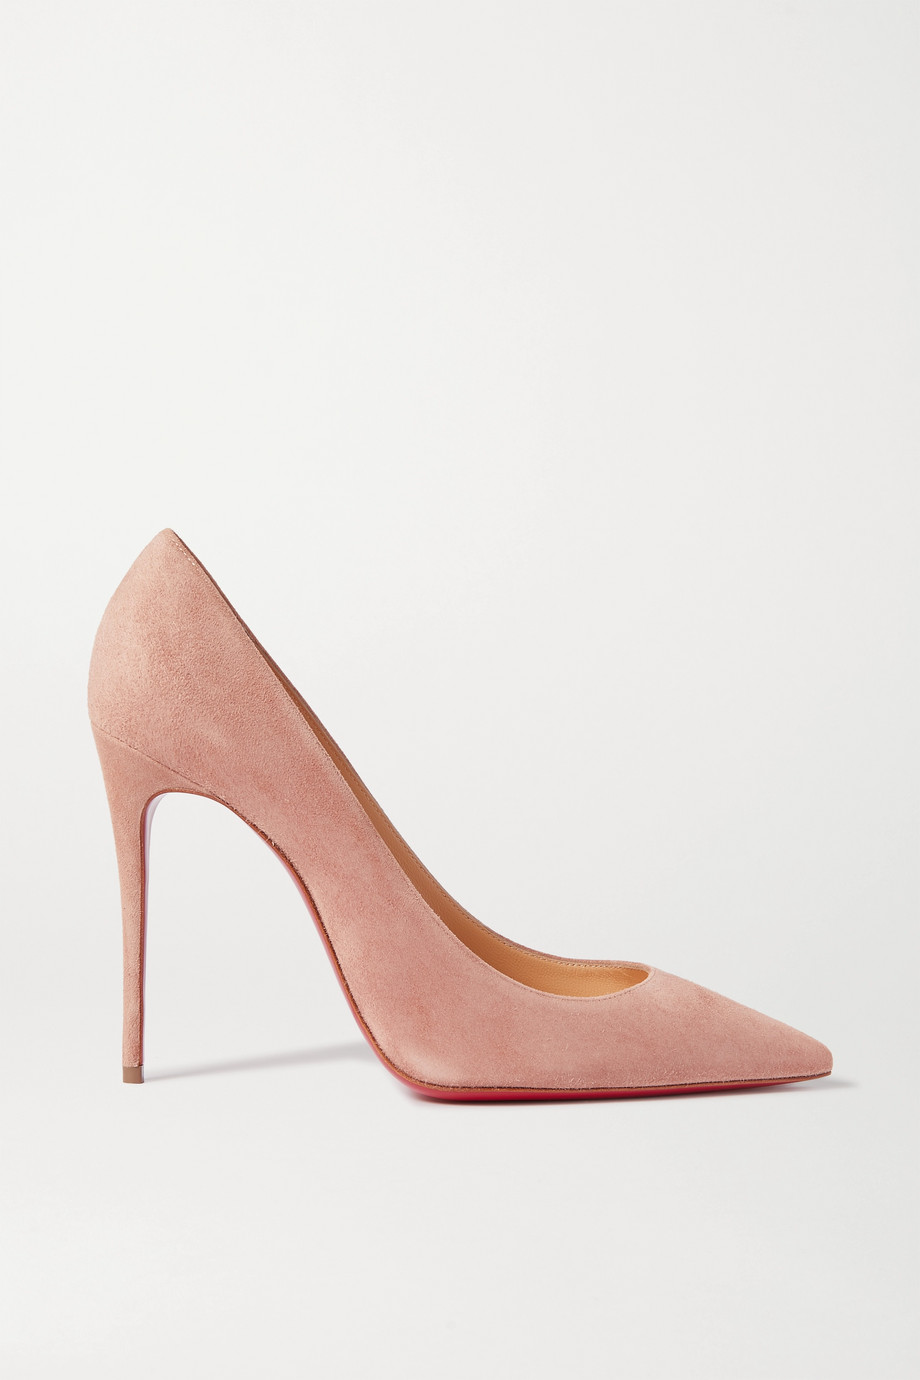 Christian Louboutin Kate 100 绒面革高跟鞋